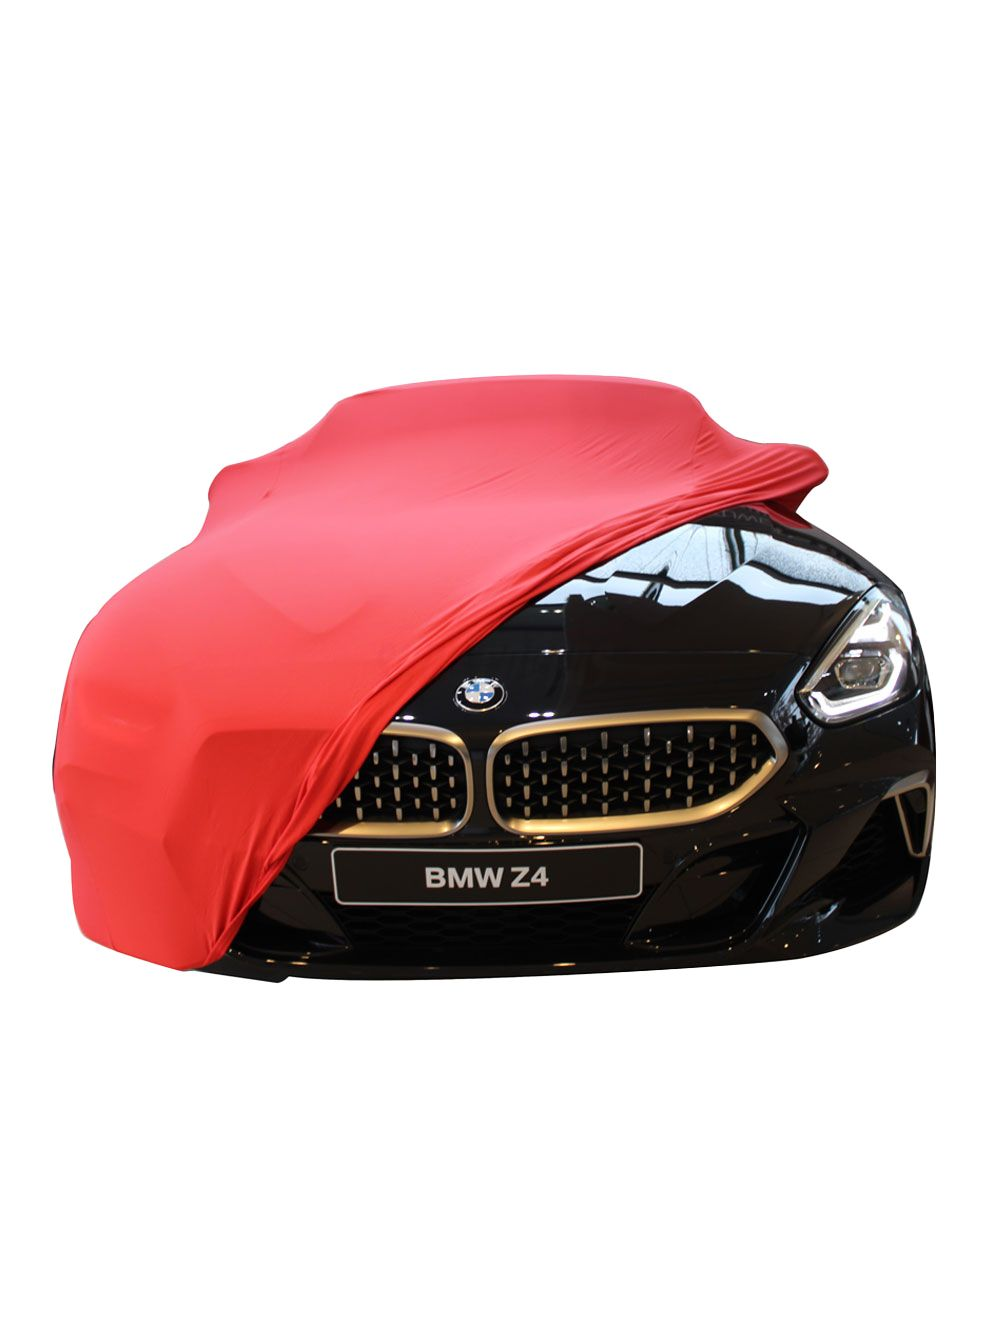 Indoor Car Cover Bmw Z4 G29 2018 Current 140 Super Soft Garagecover For Premium Scratch Free Car Protection Tailor Made Protection Of Your Car